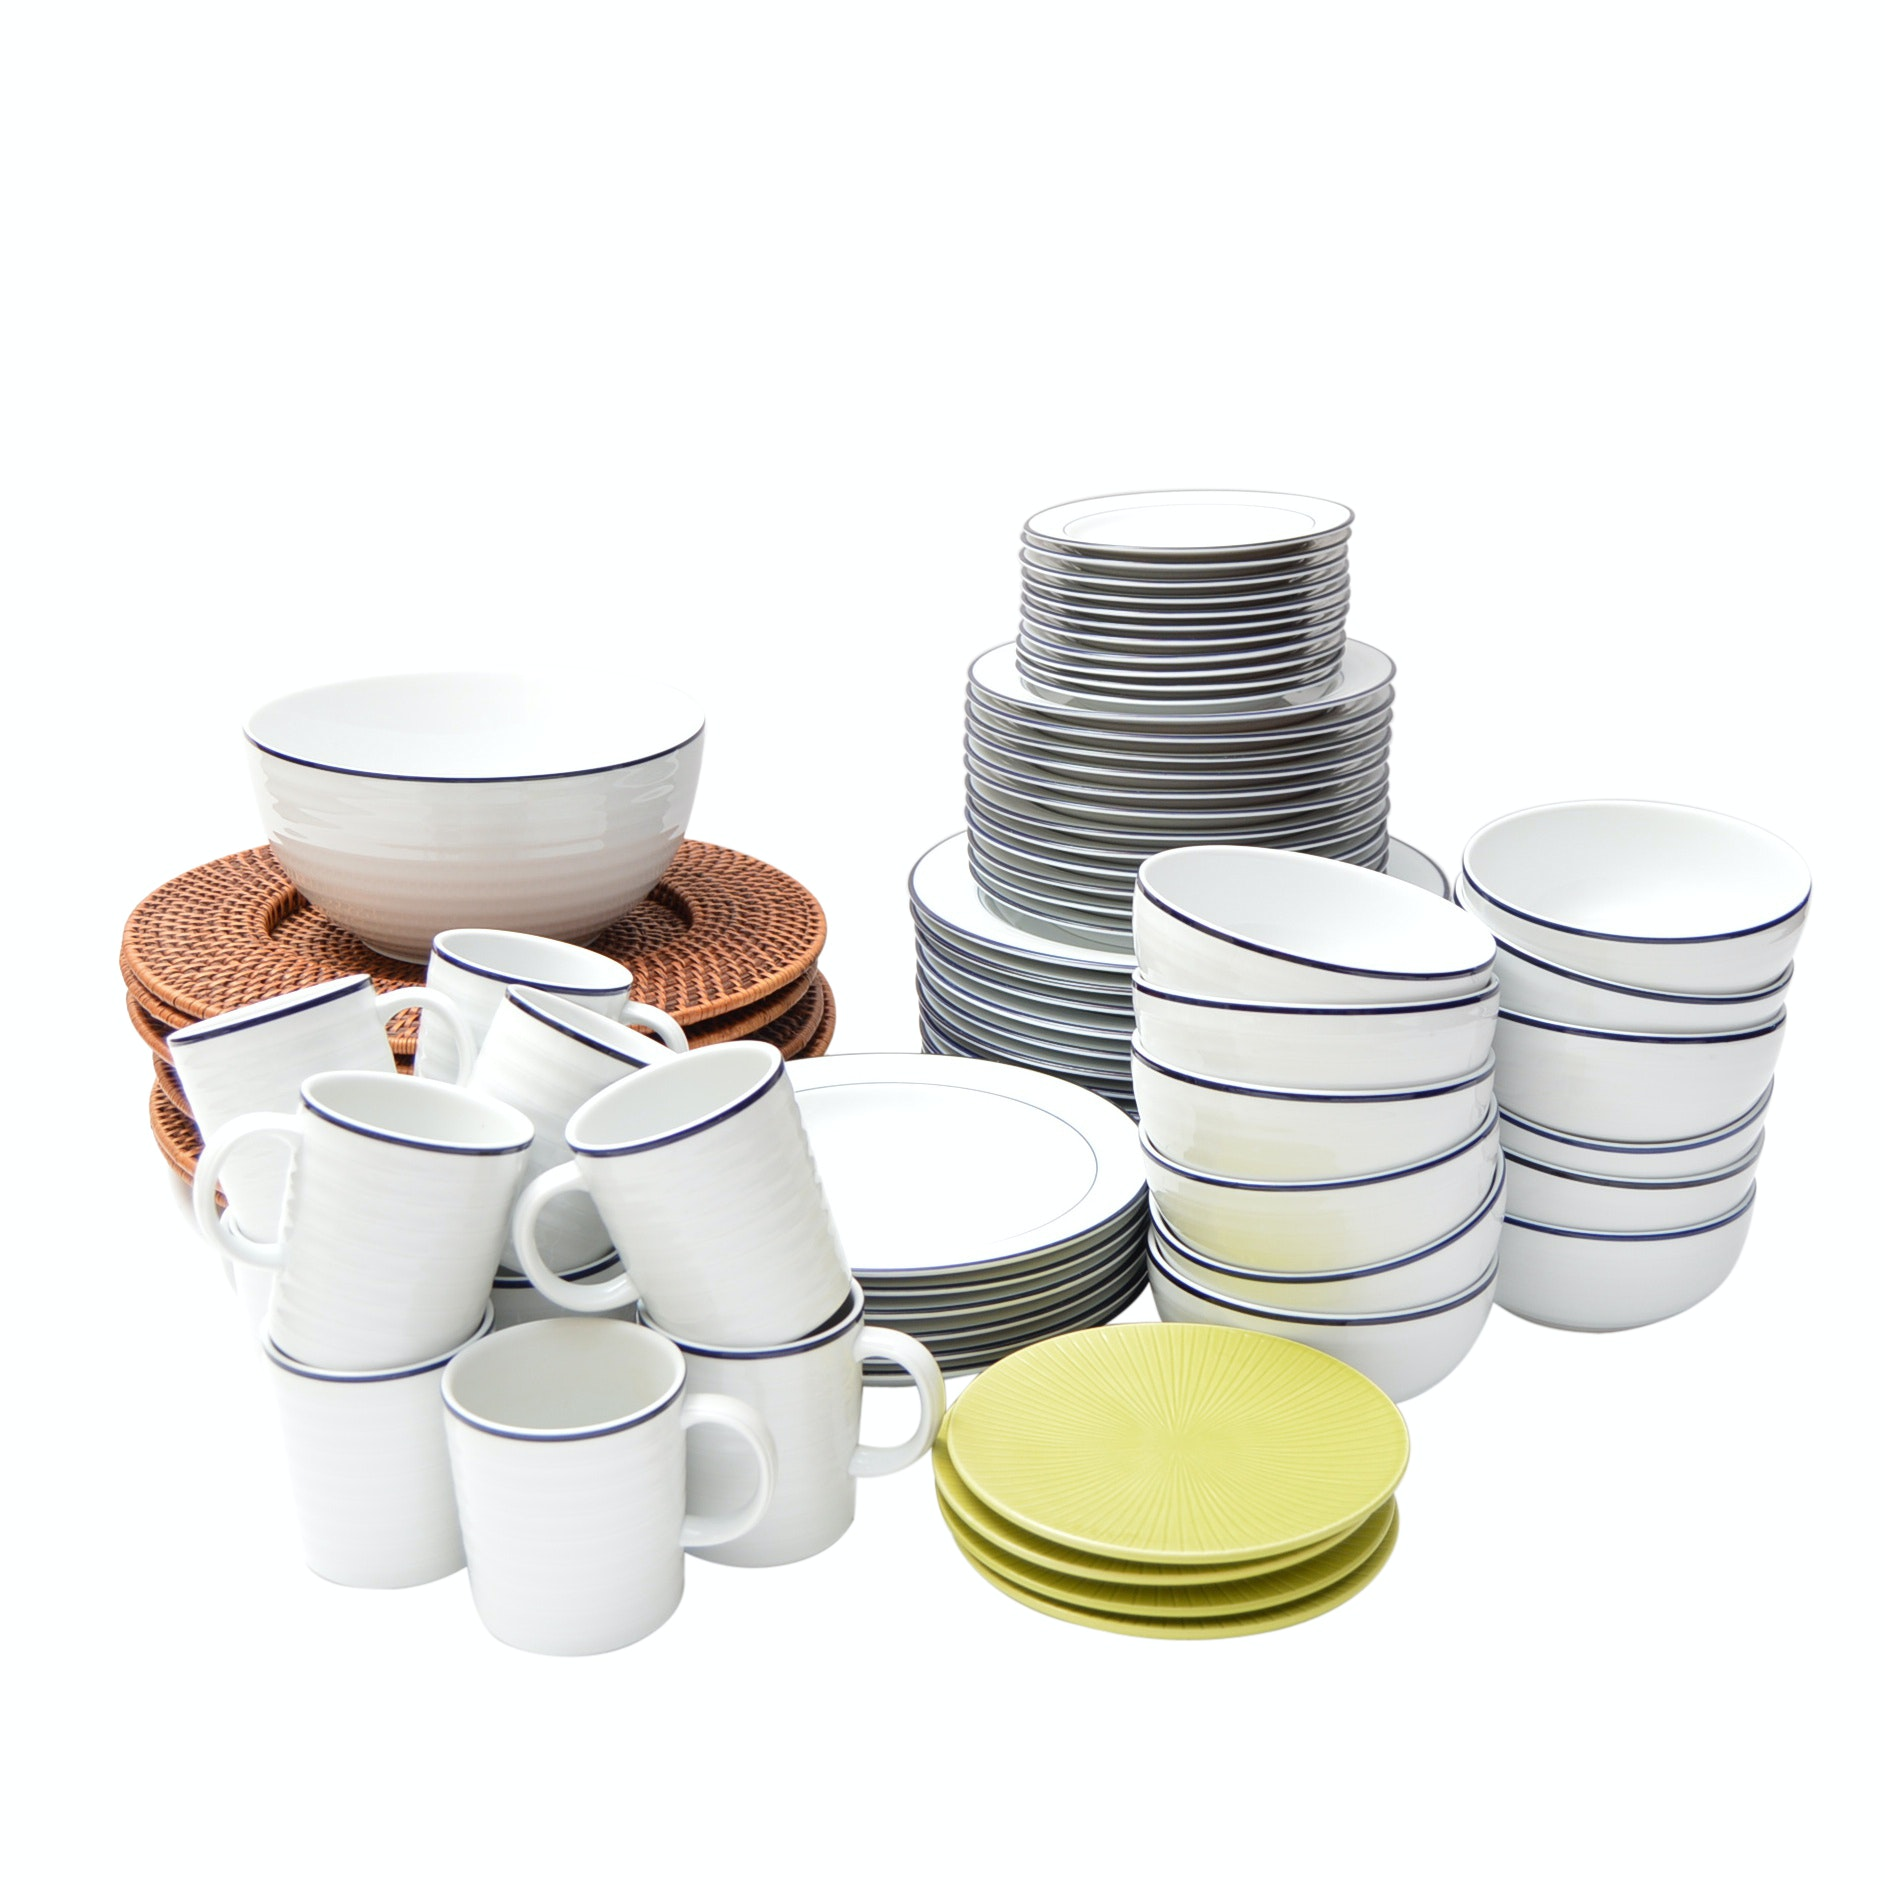 Set of Crate & Barrel Dinnerware with Rattan Chargers